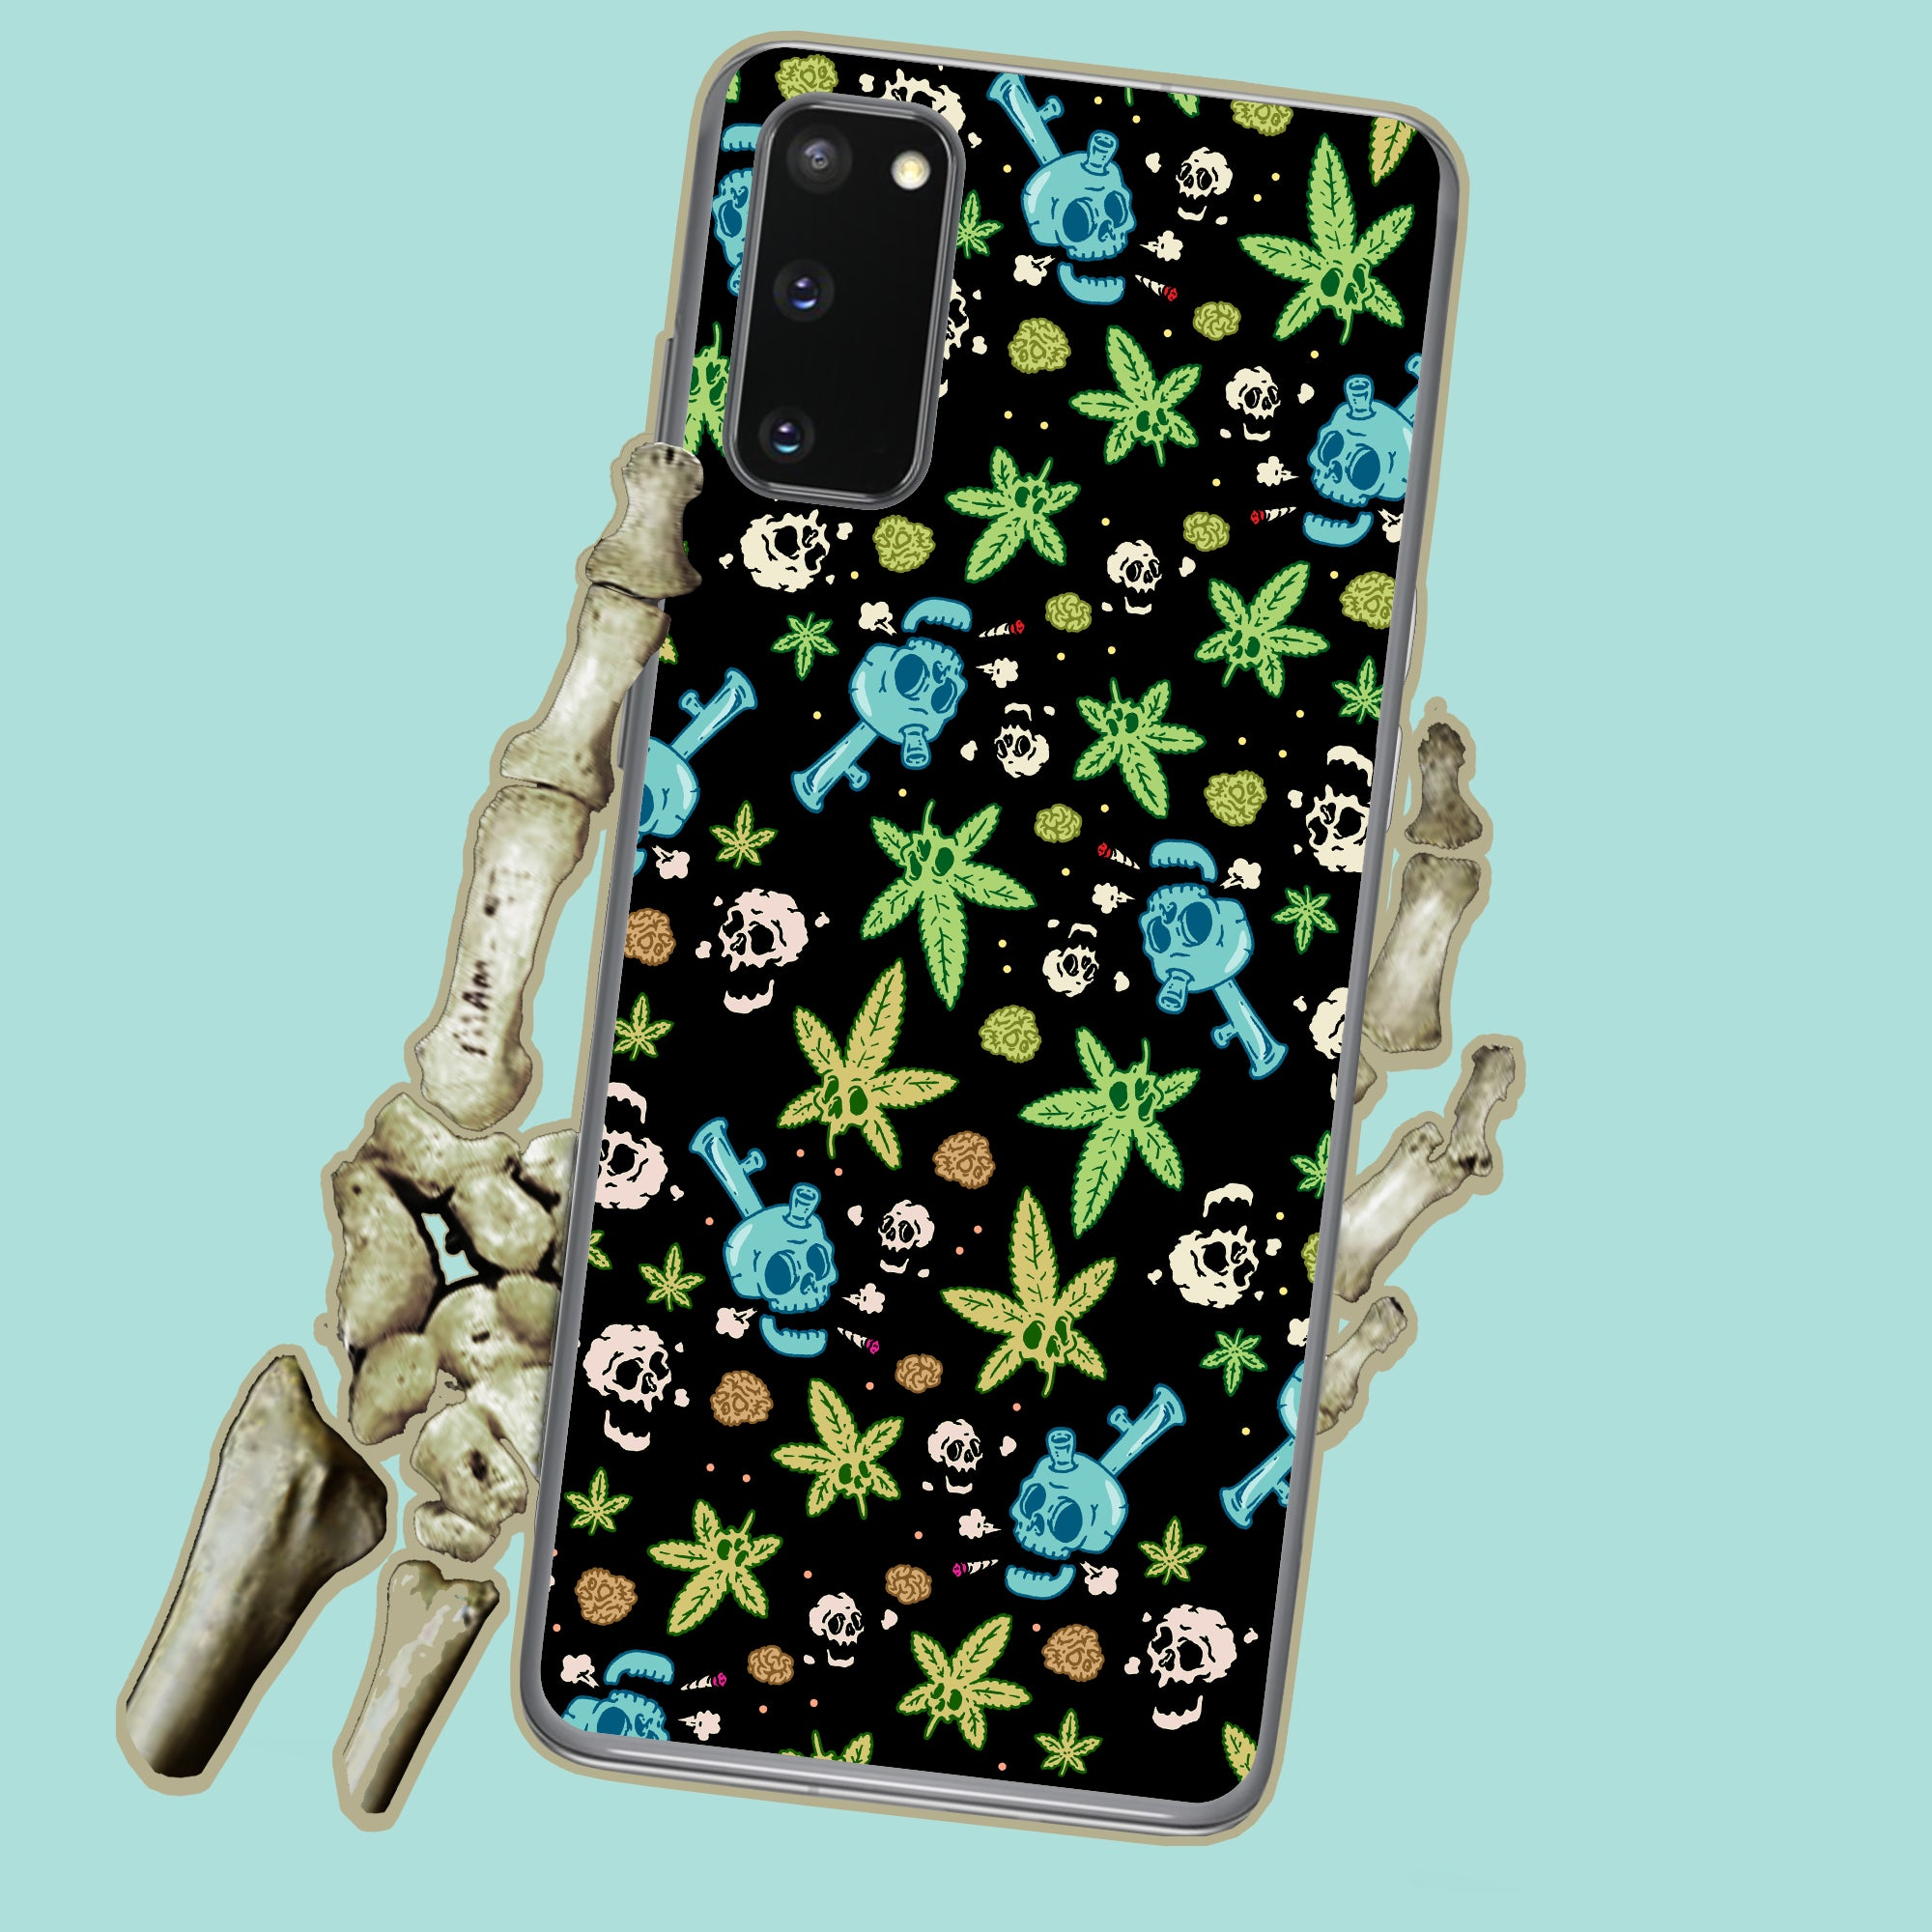 Weed And Skulls Samsung Case